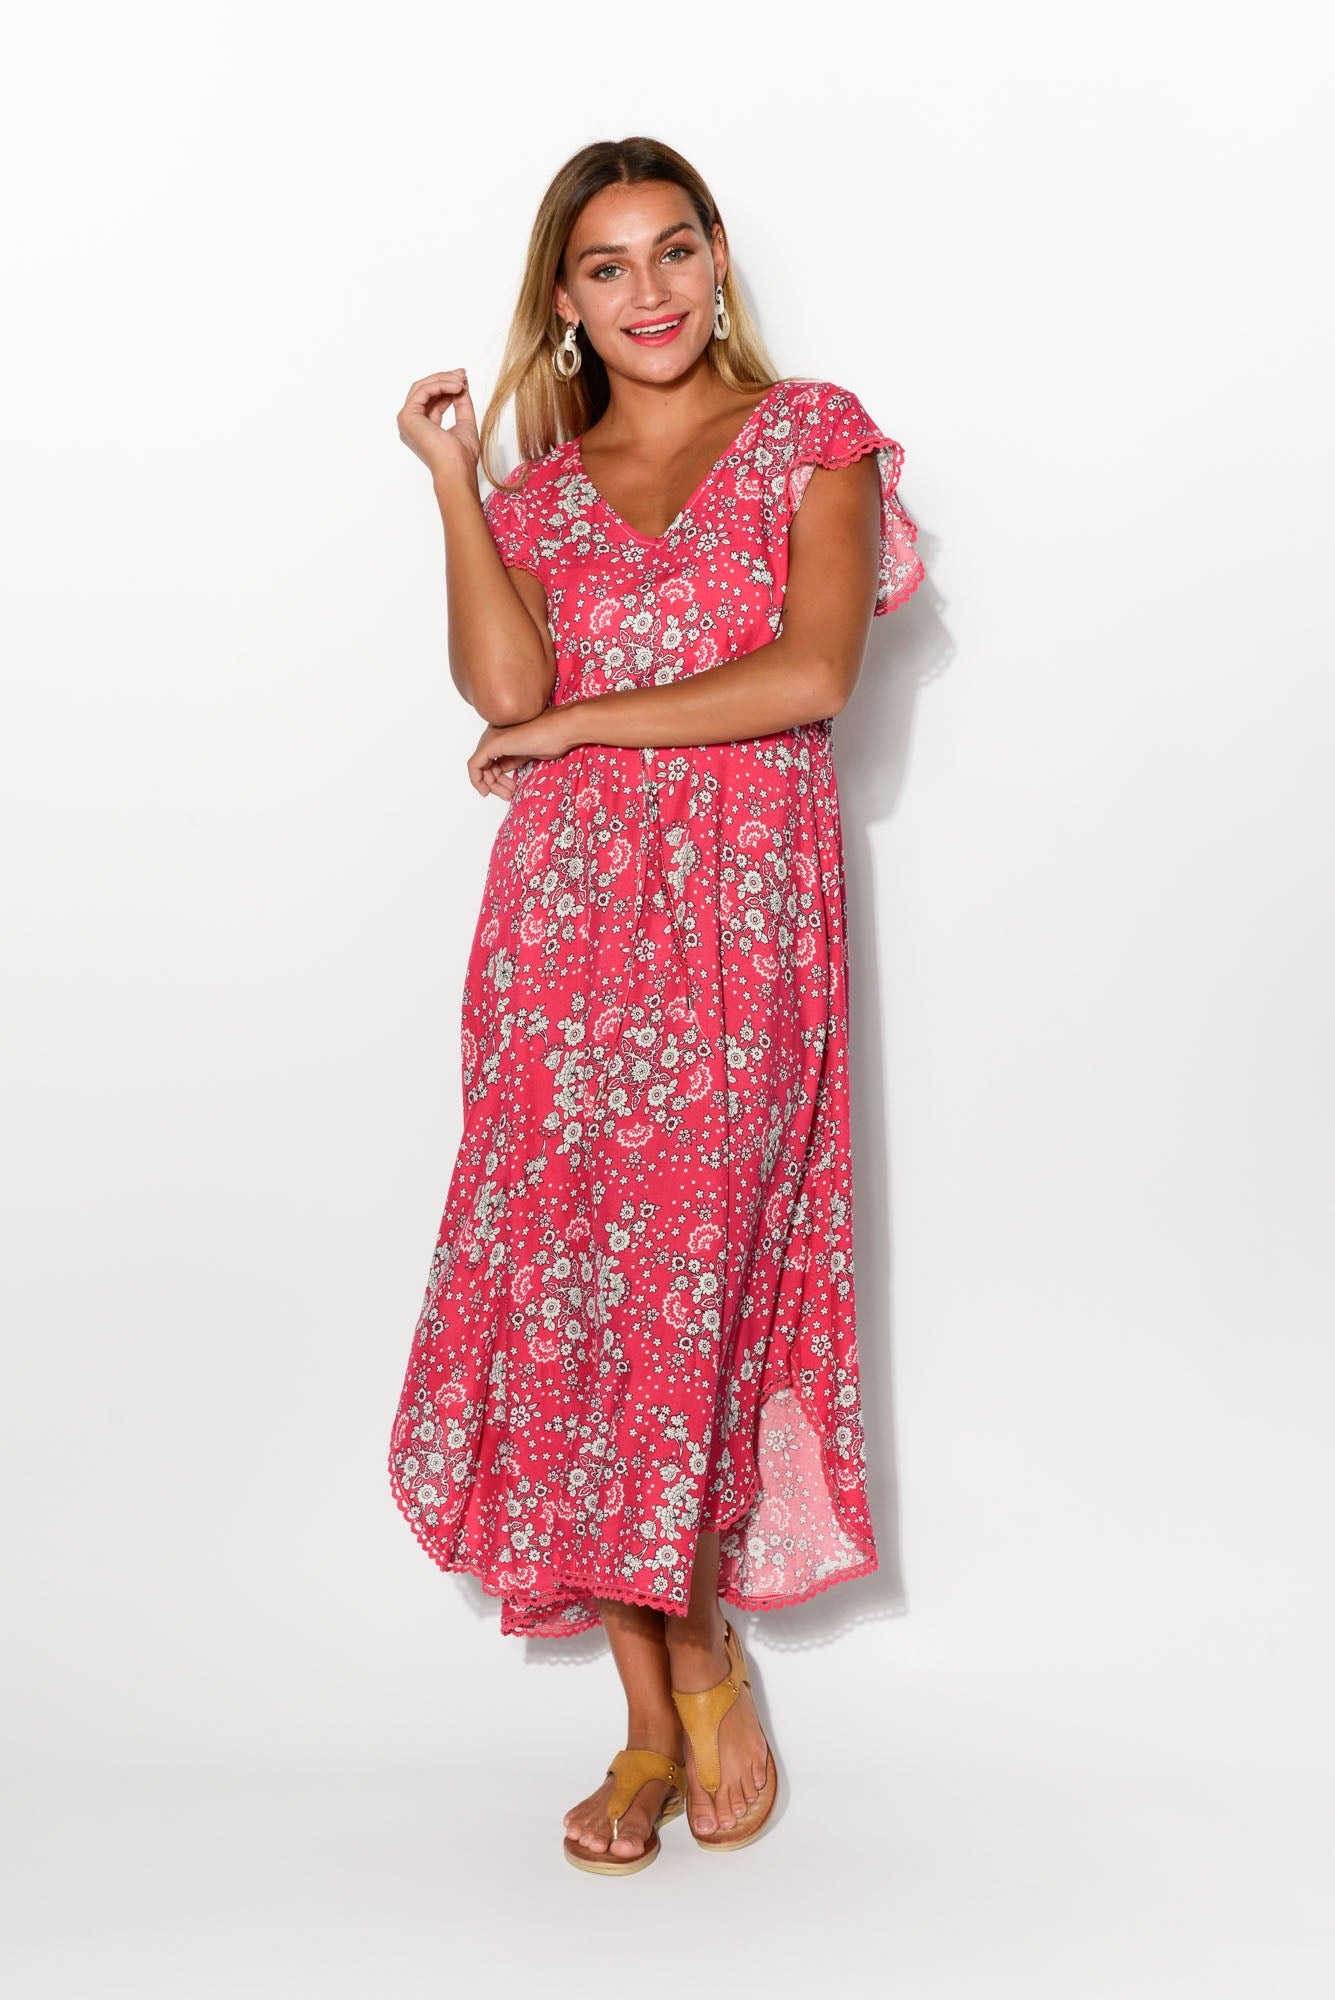 Brianna Pink Floral Midi Dress - Blue Bungalow